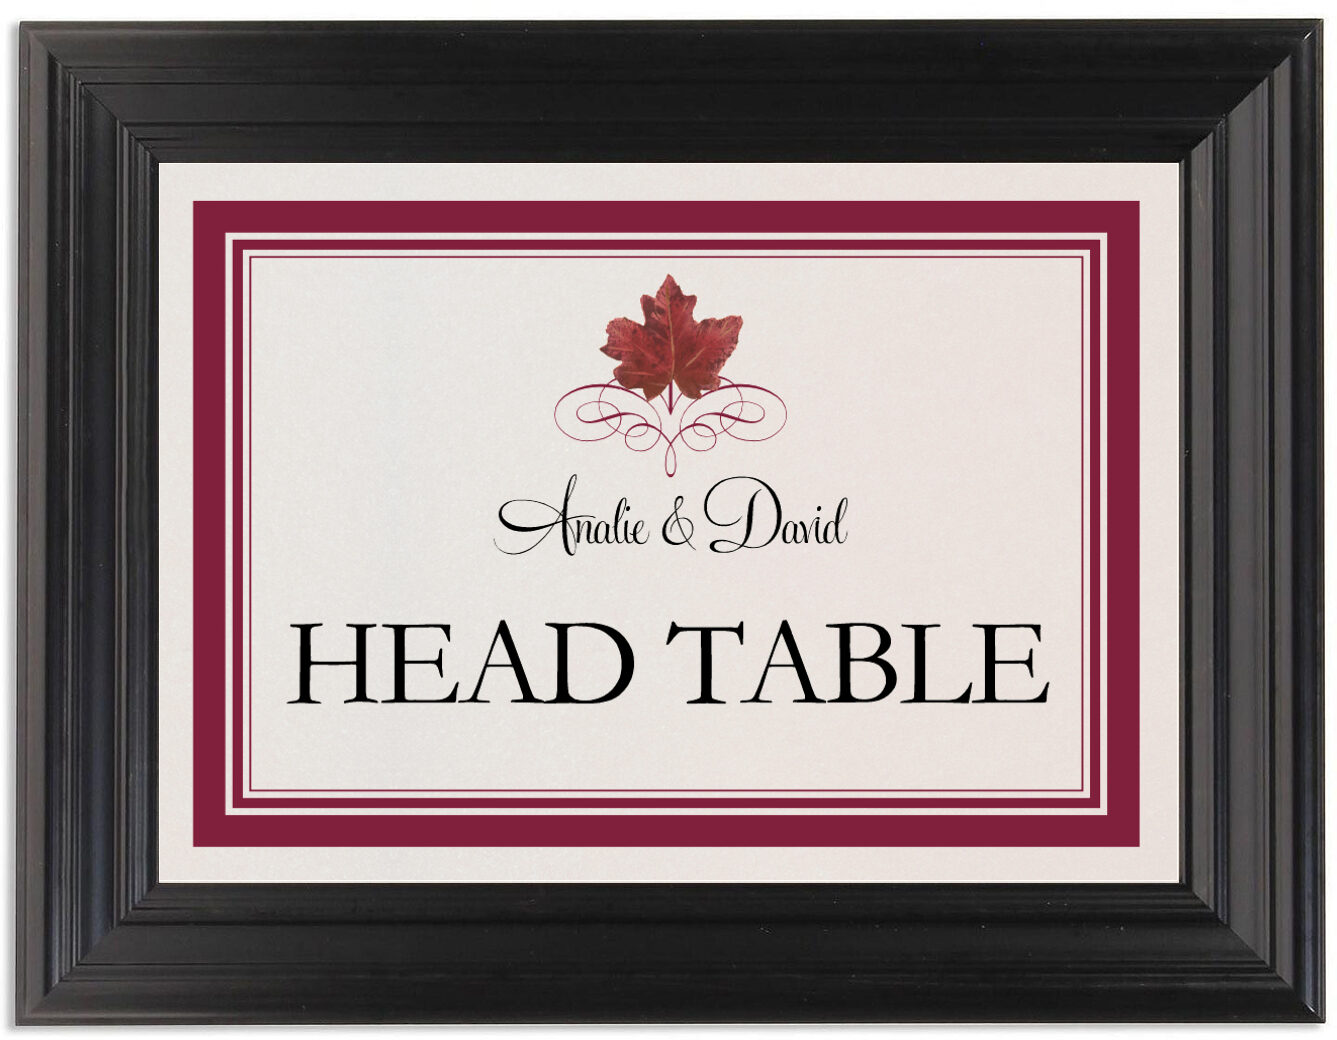 Framed Photograph of Red Maple Leaf Heart Table Names